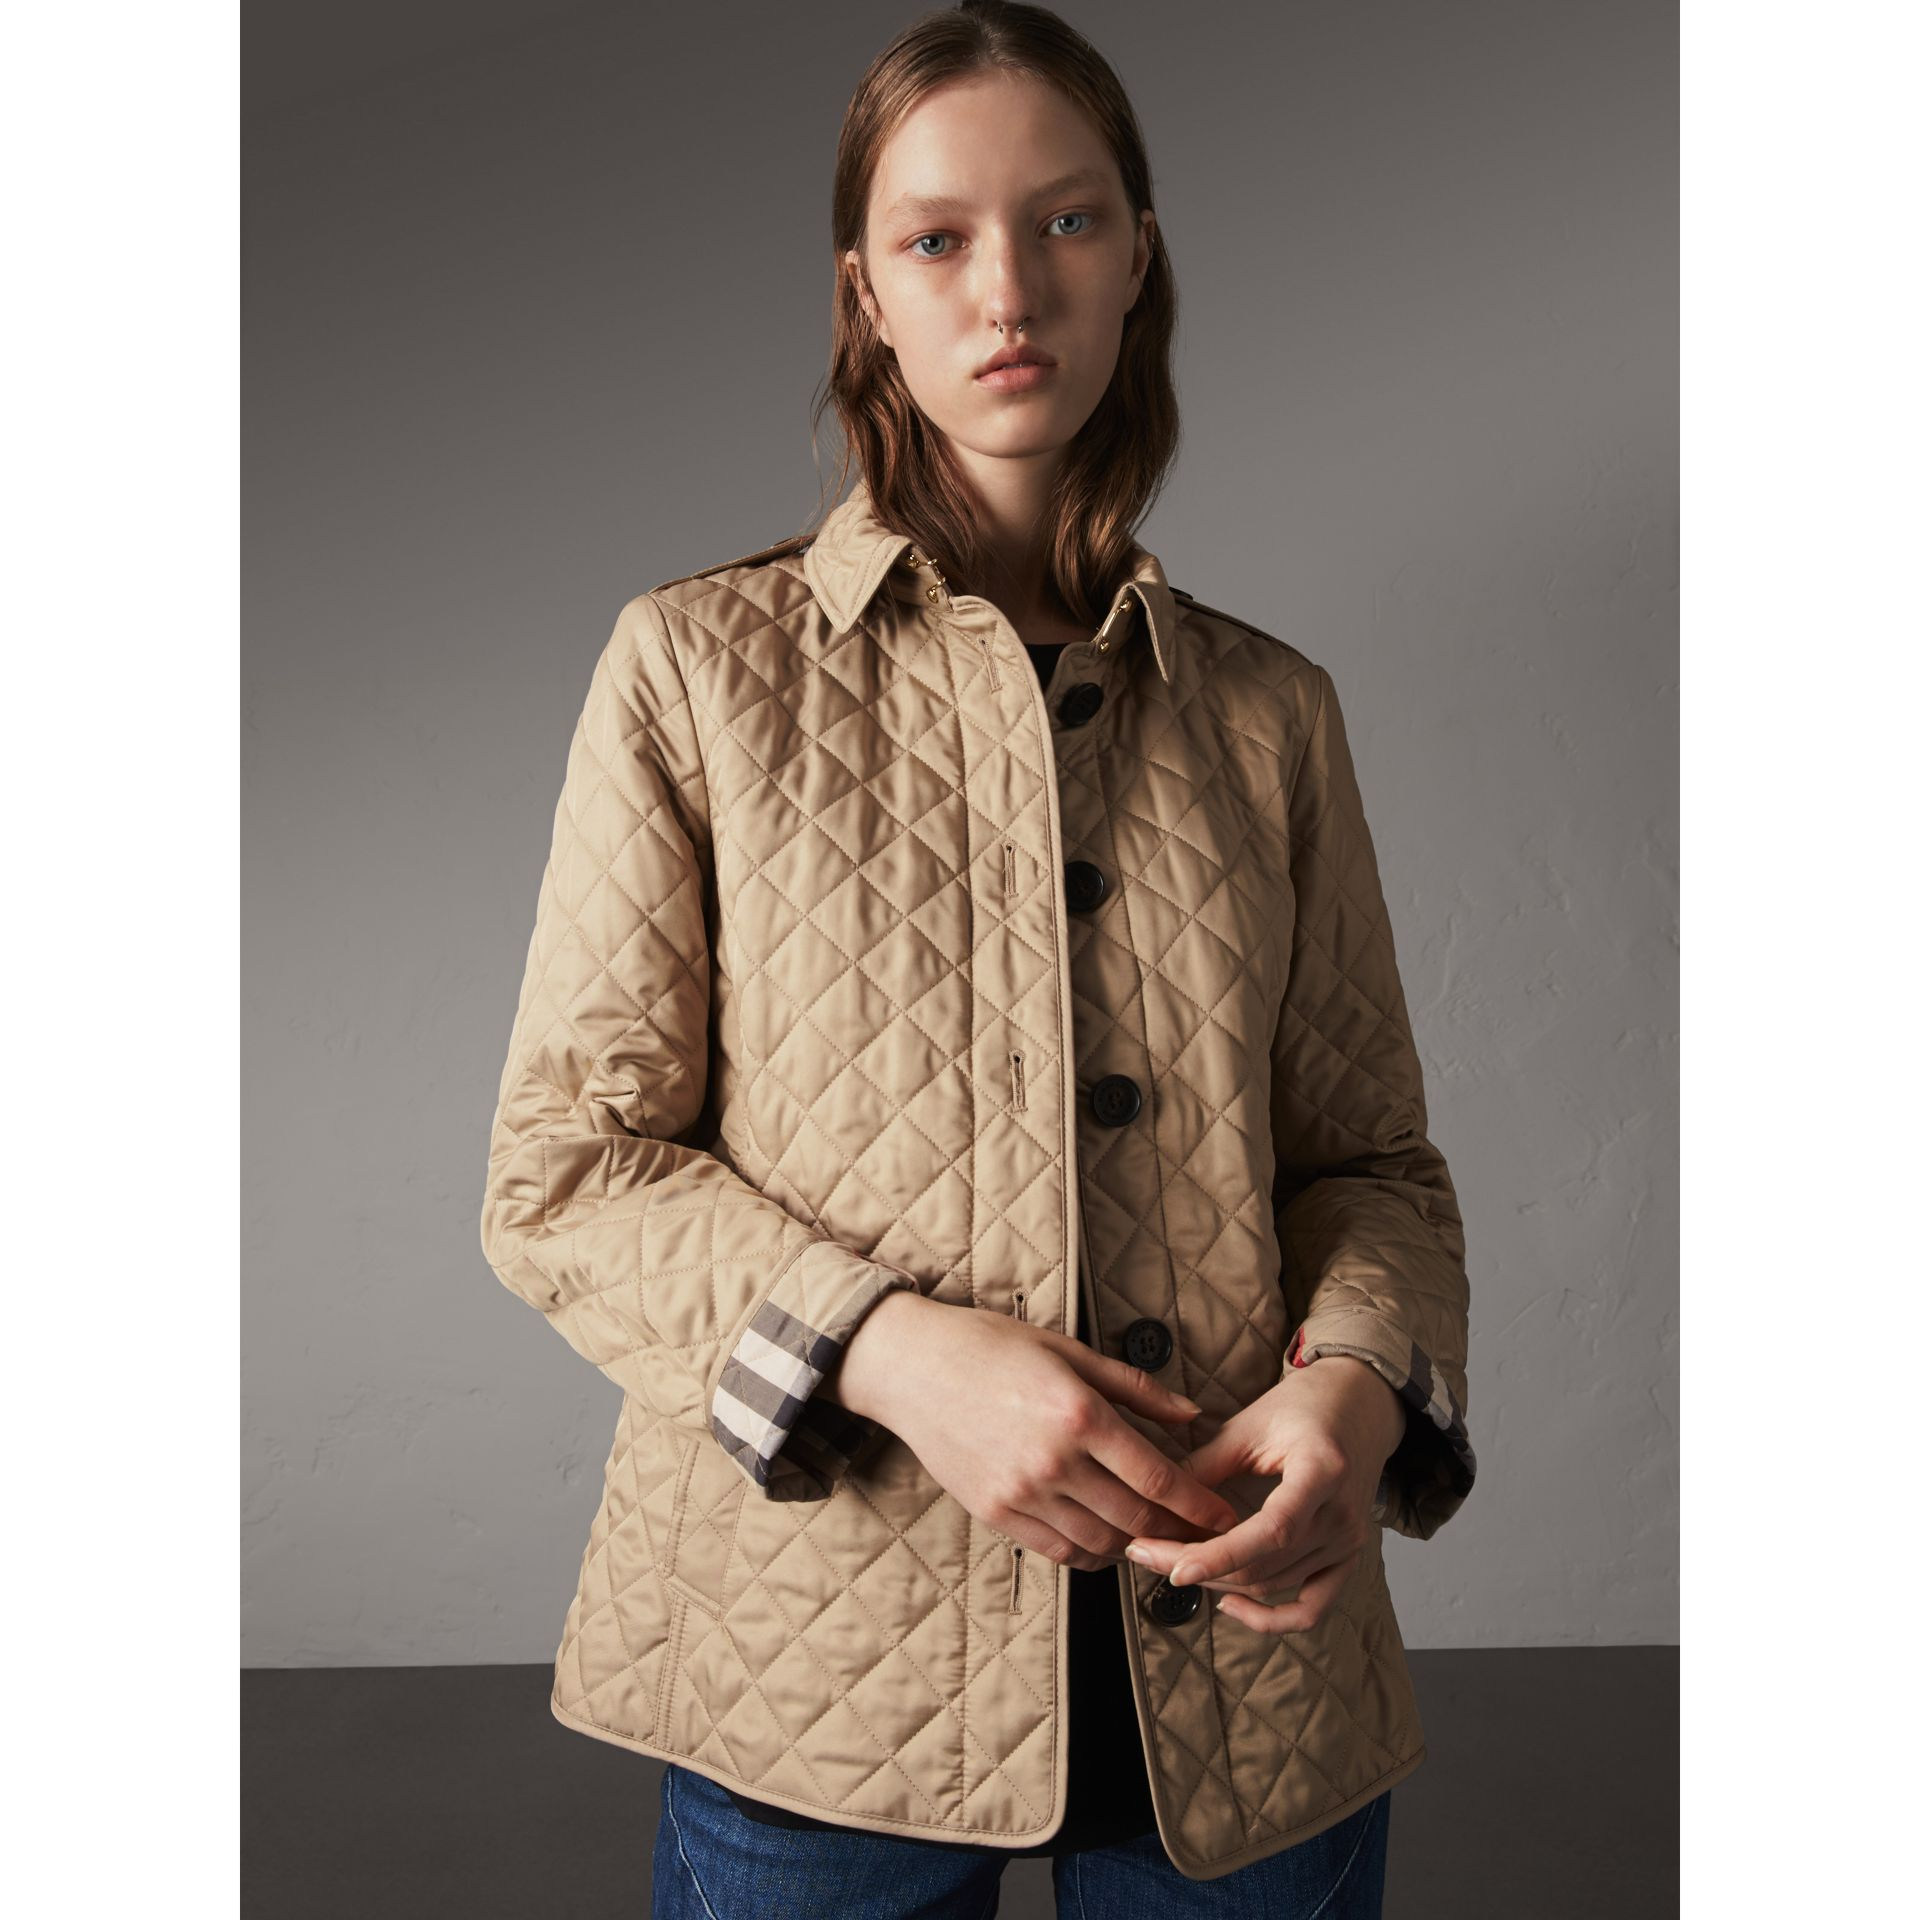 gransworth resmode burberry tif bloomingdale shop op sharpen jacket usm comp quilt wid quilted layer product pdpimgshortdescription fpx s qlt